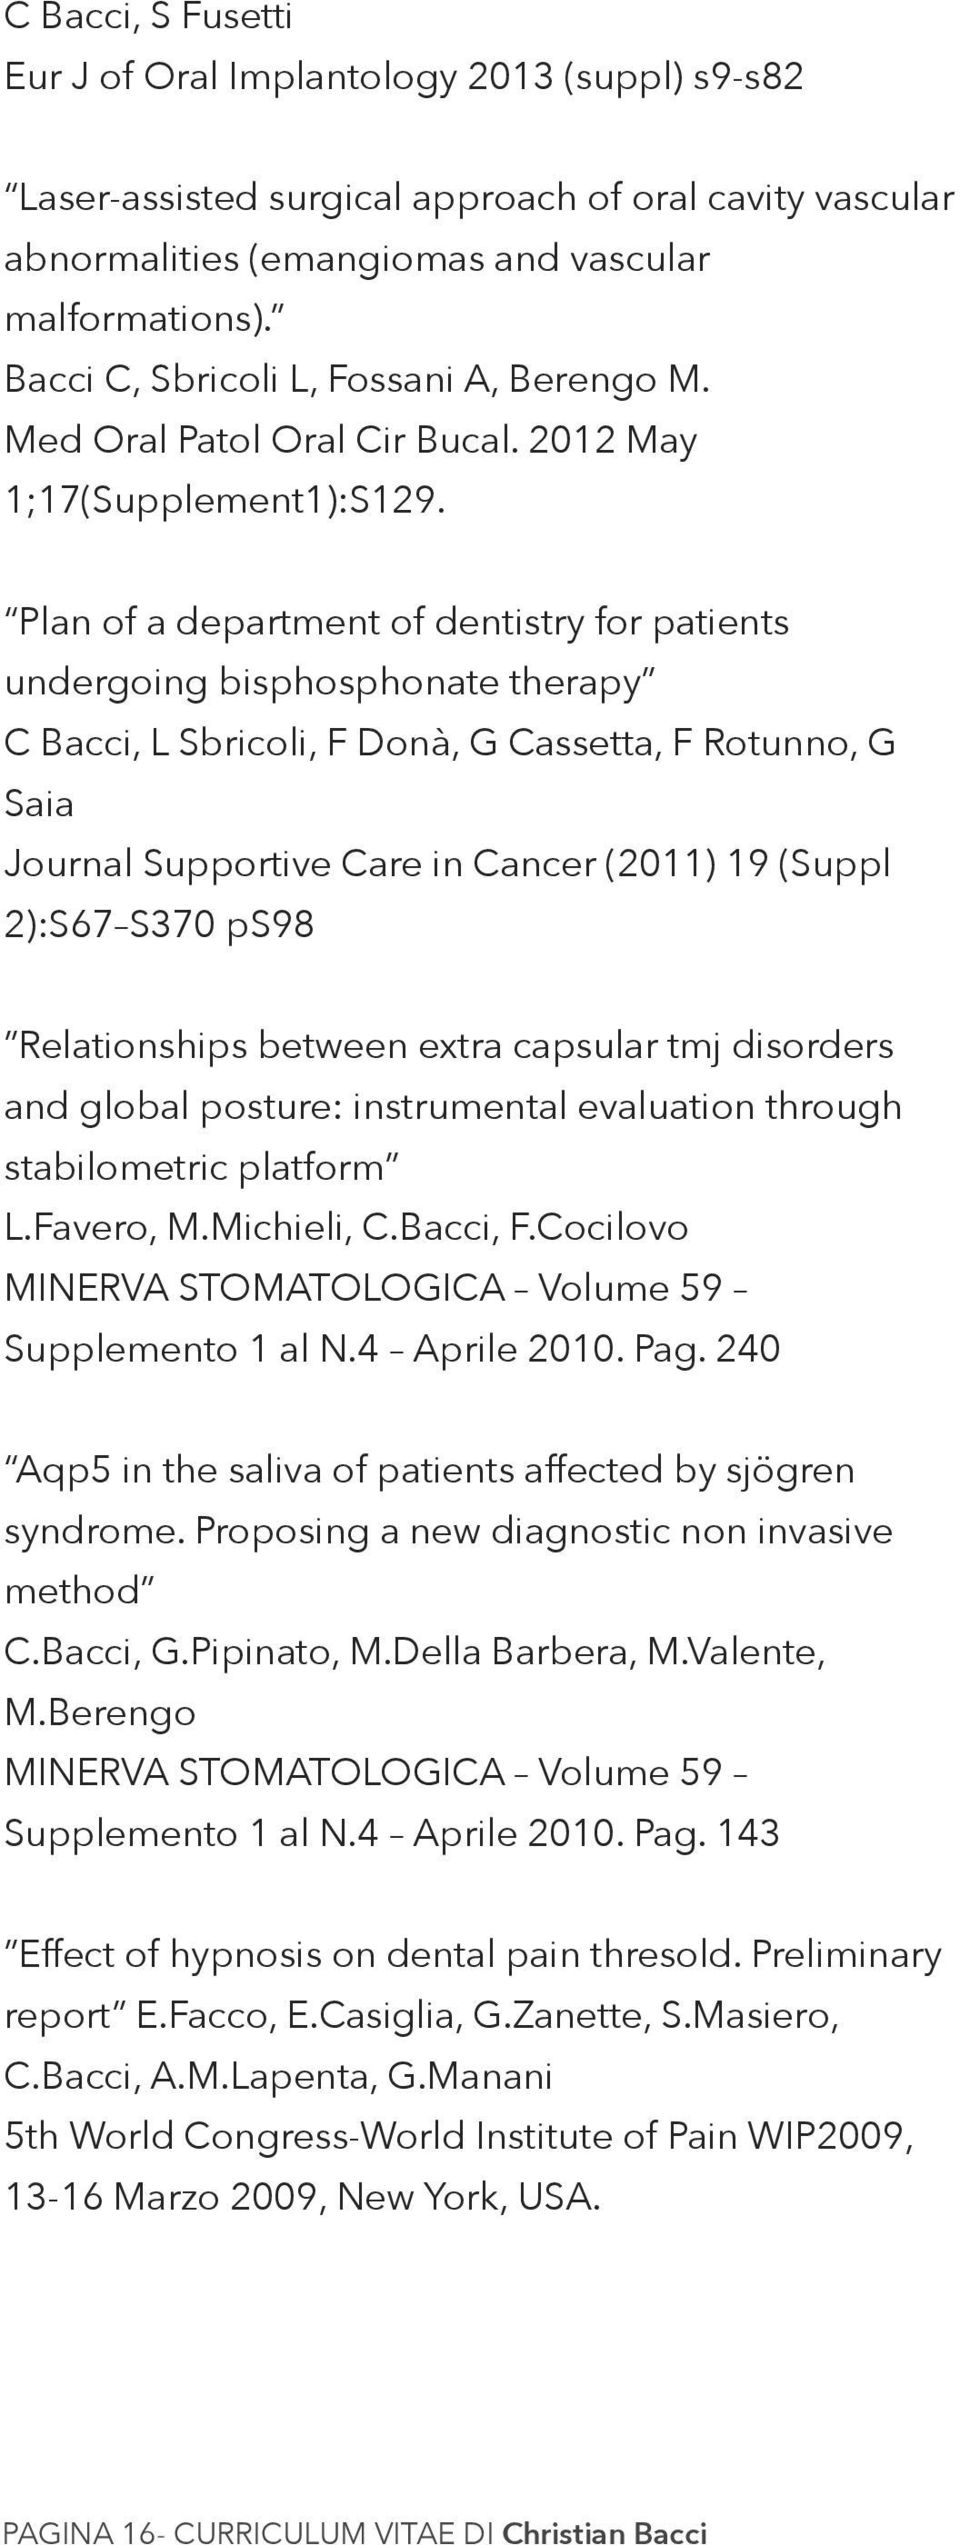 Plan of a department of dentistry for patients undergoing bisphosphonate therapy C Bacci, L Sbricoli, F Donà, G Cassetta, F Rotunno, G Saia Journal Supportive Care in Cancer (2011) 19 (Suppl 2):S67